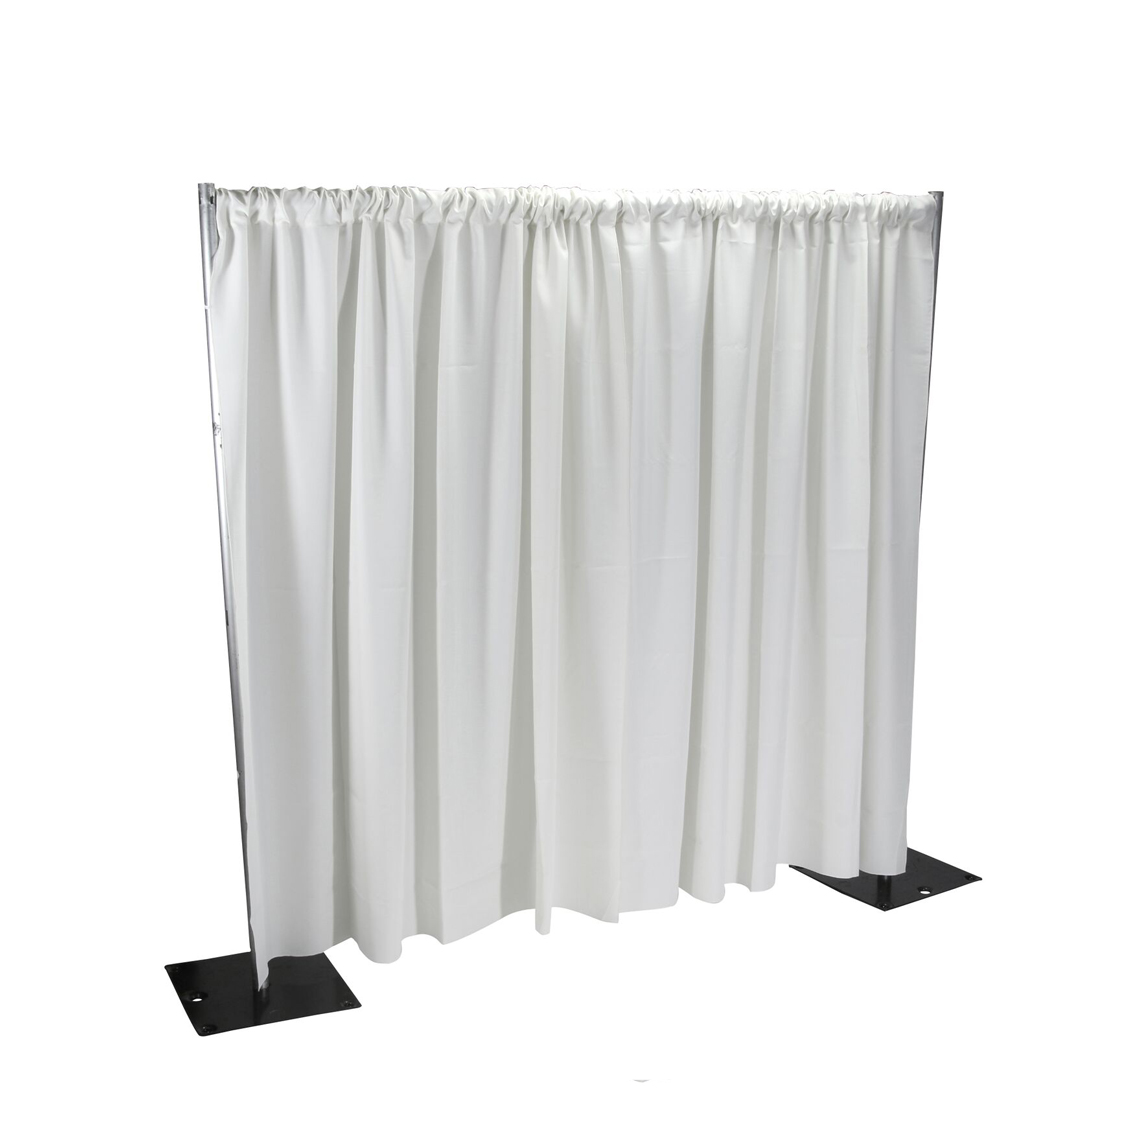 drape drapes extracoeventbackdrop portable waco renting rsvp pipe using and